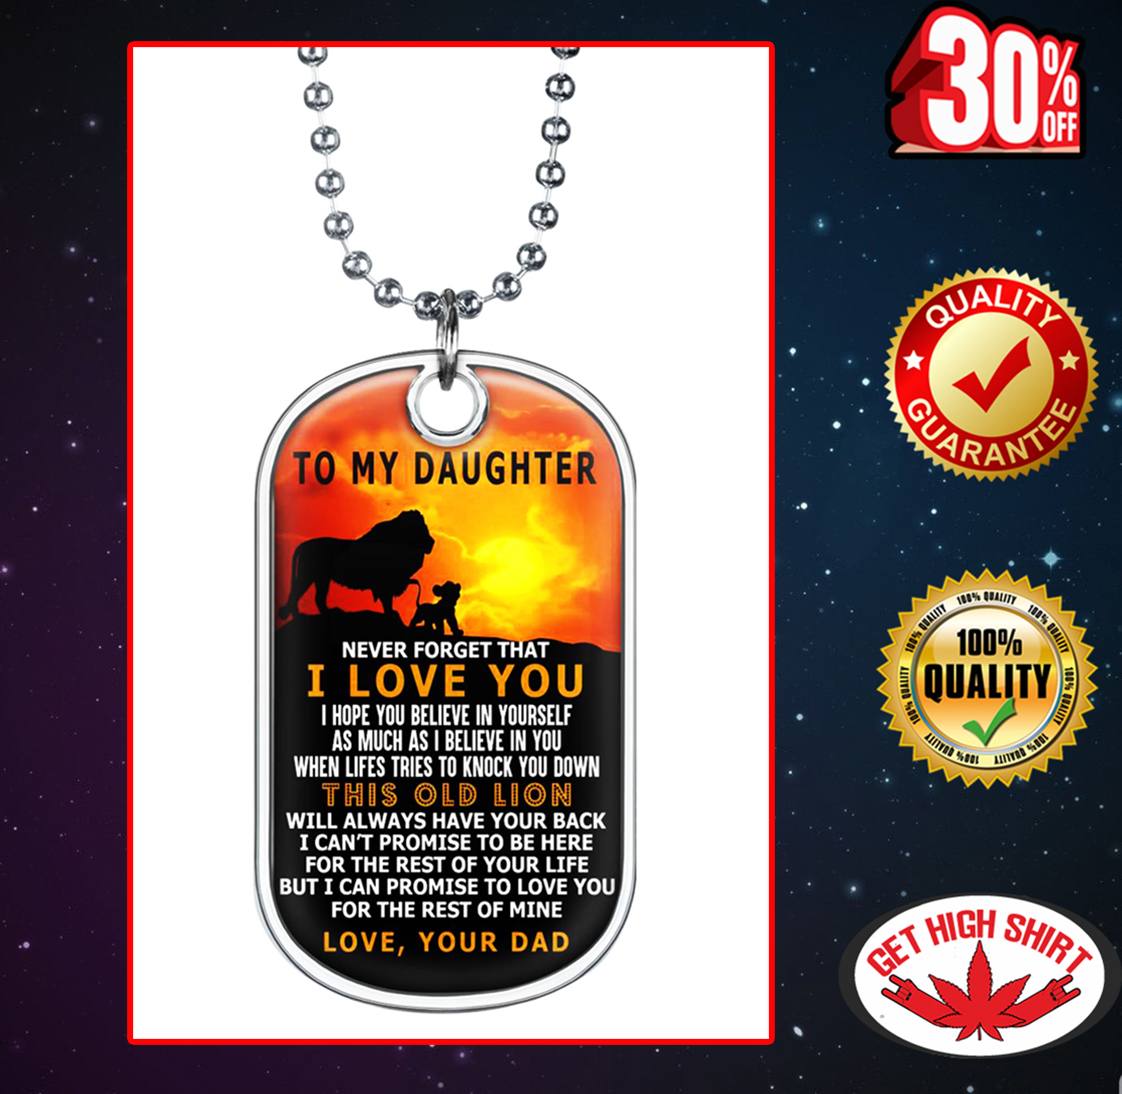 The Lion King To my daughter love your dad Dog Tag - Premium Dog Tag